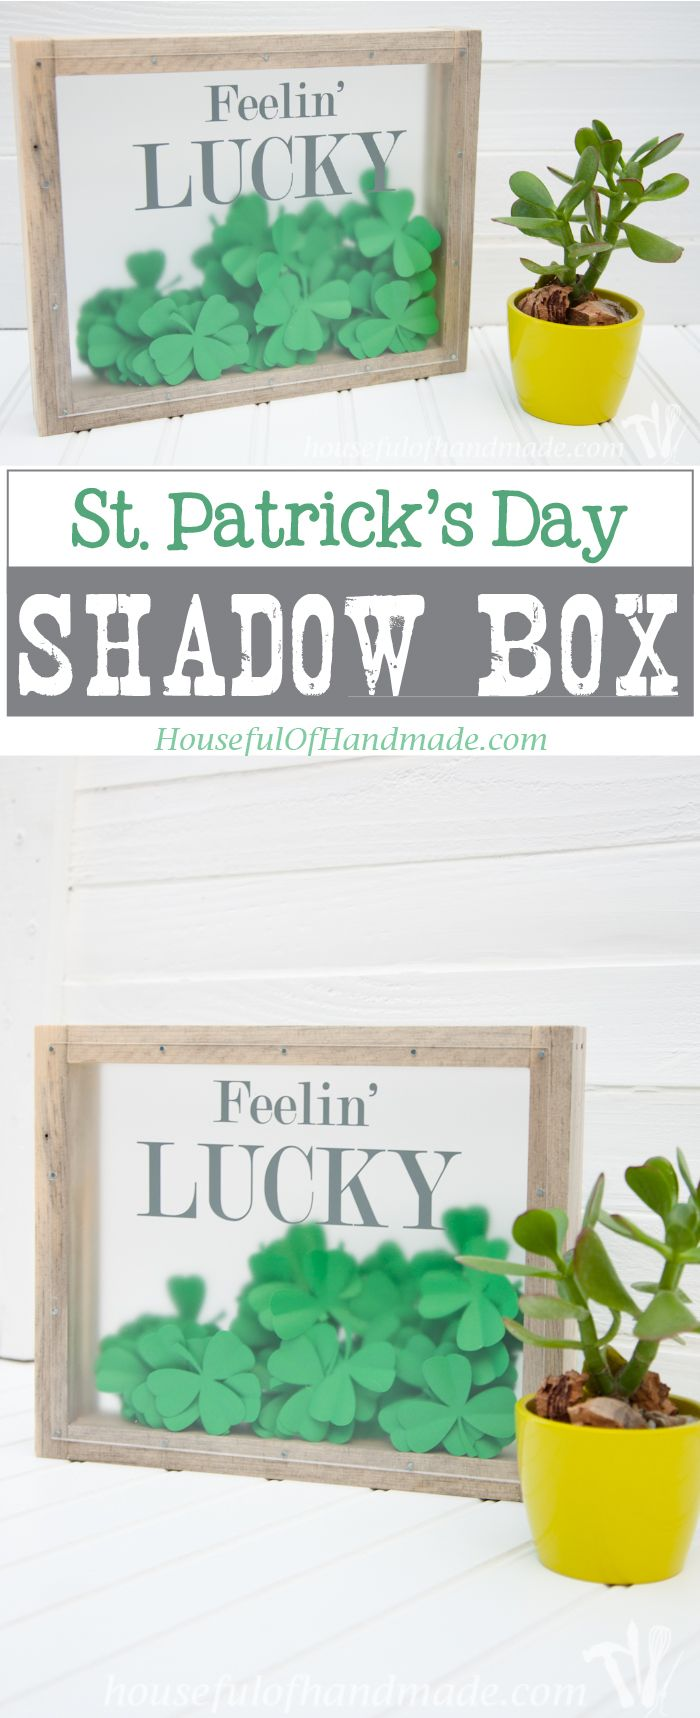 I love this fun St. Patrick's Day shadow box. The perfect way to bring a little green to your decor. | Housefulofhandmade.com